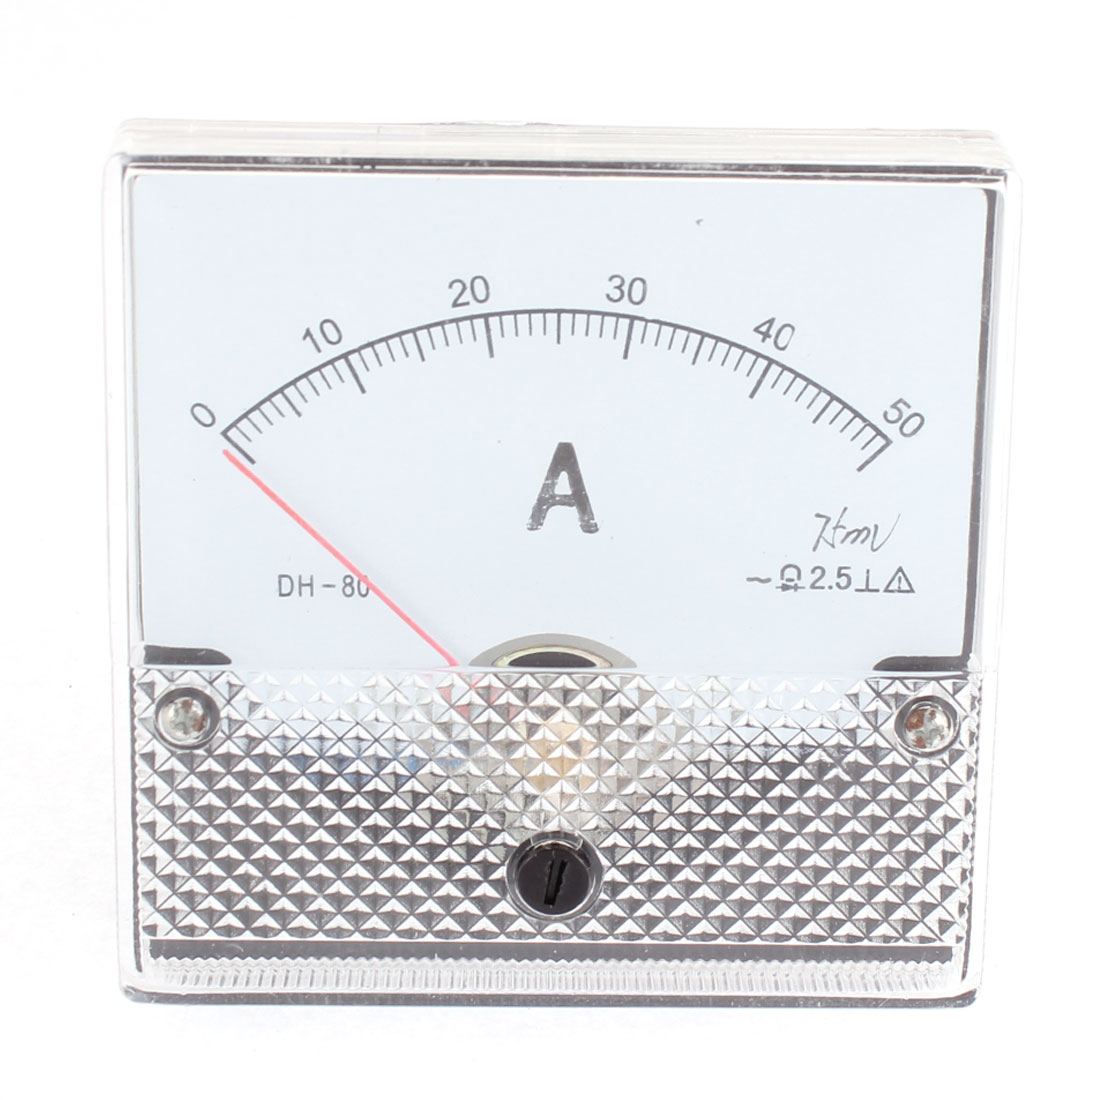 DH-80 DC 0-50A Class 2.5 Accuracy Square Panel Mounting Analog Current Measuring Gauge Ammeter Ampere Meter